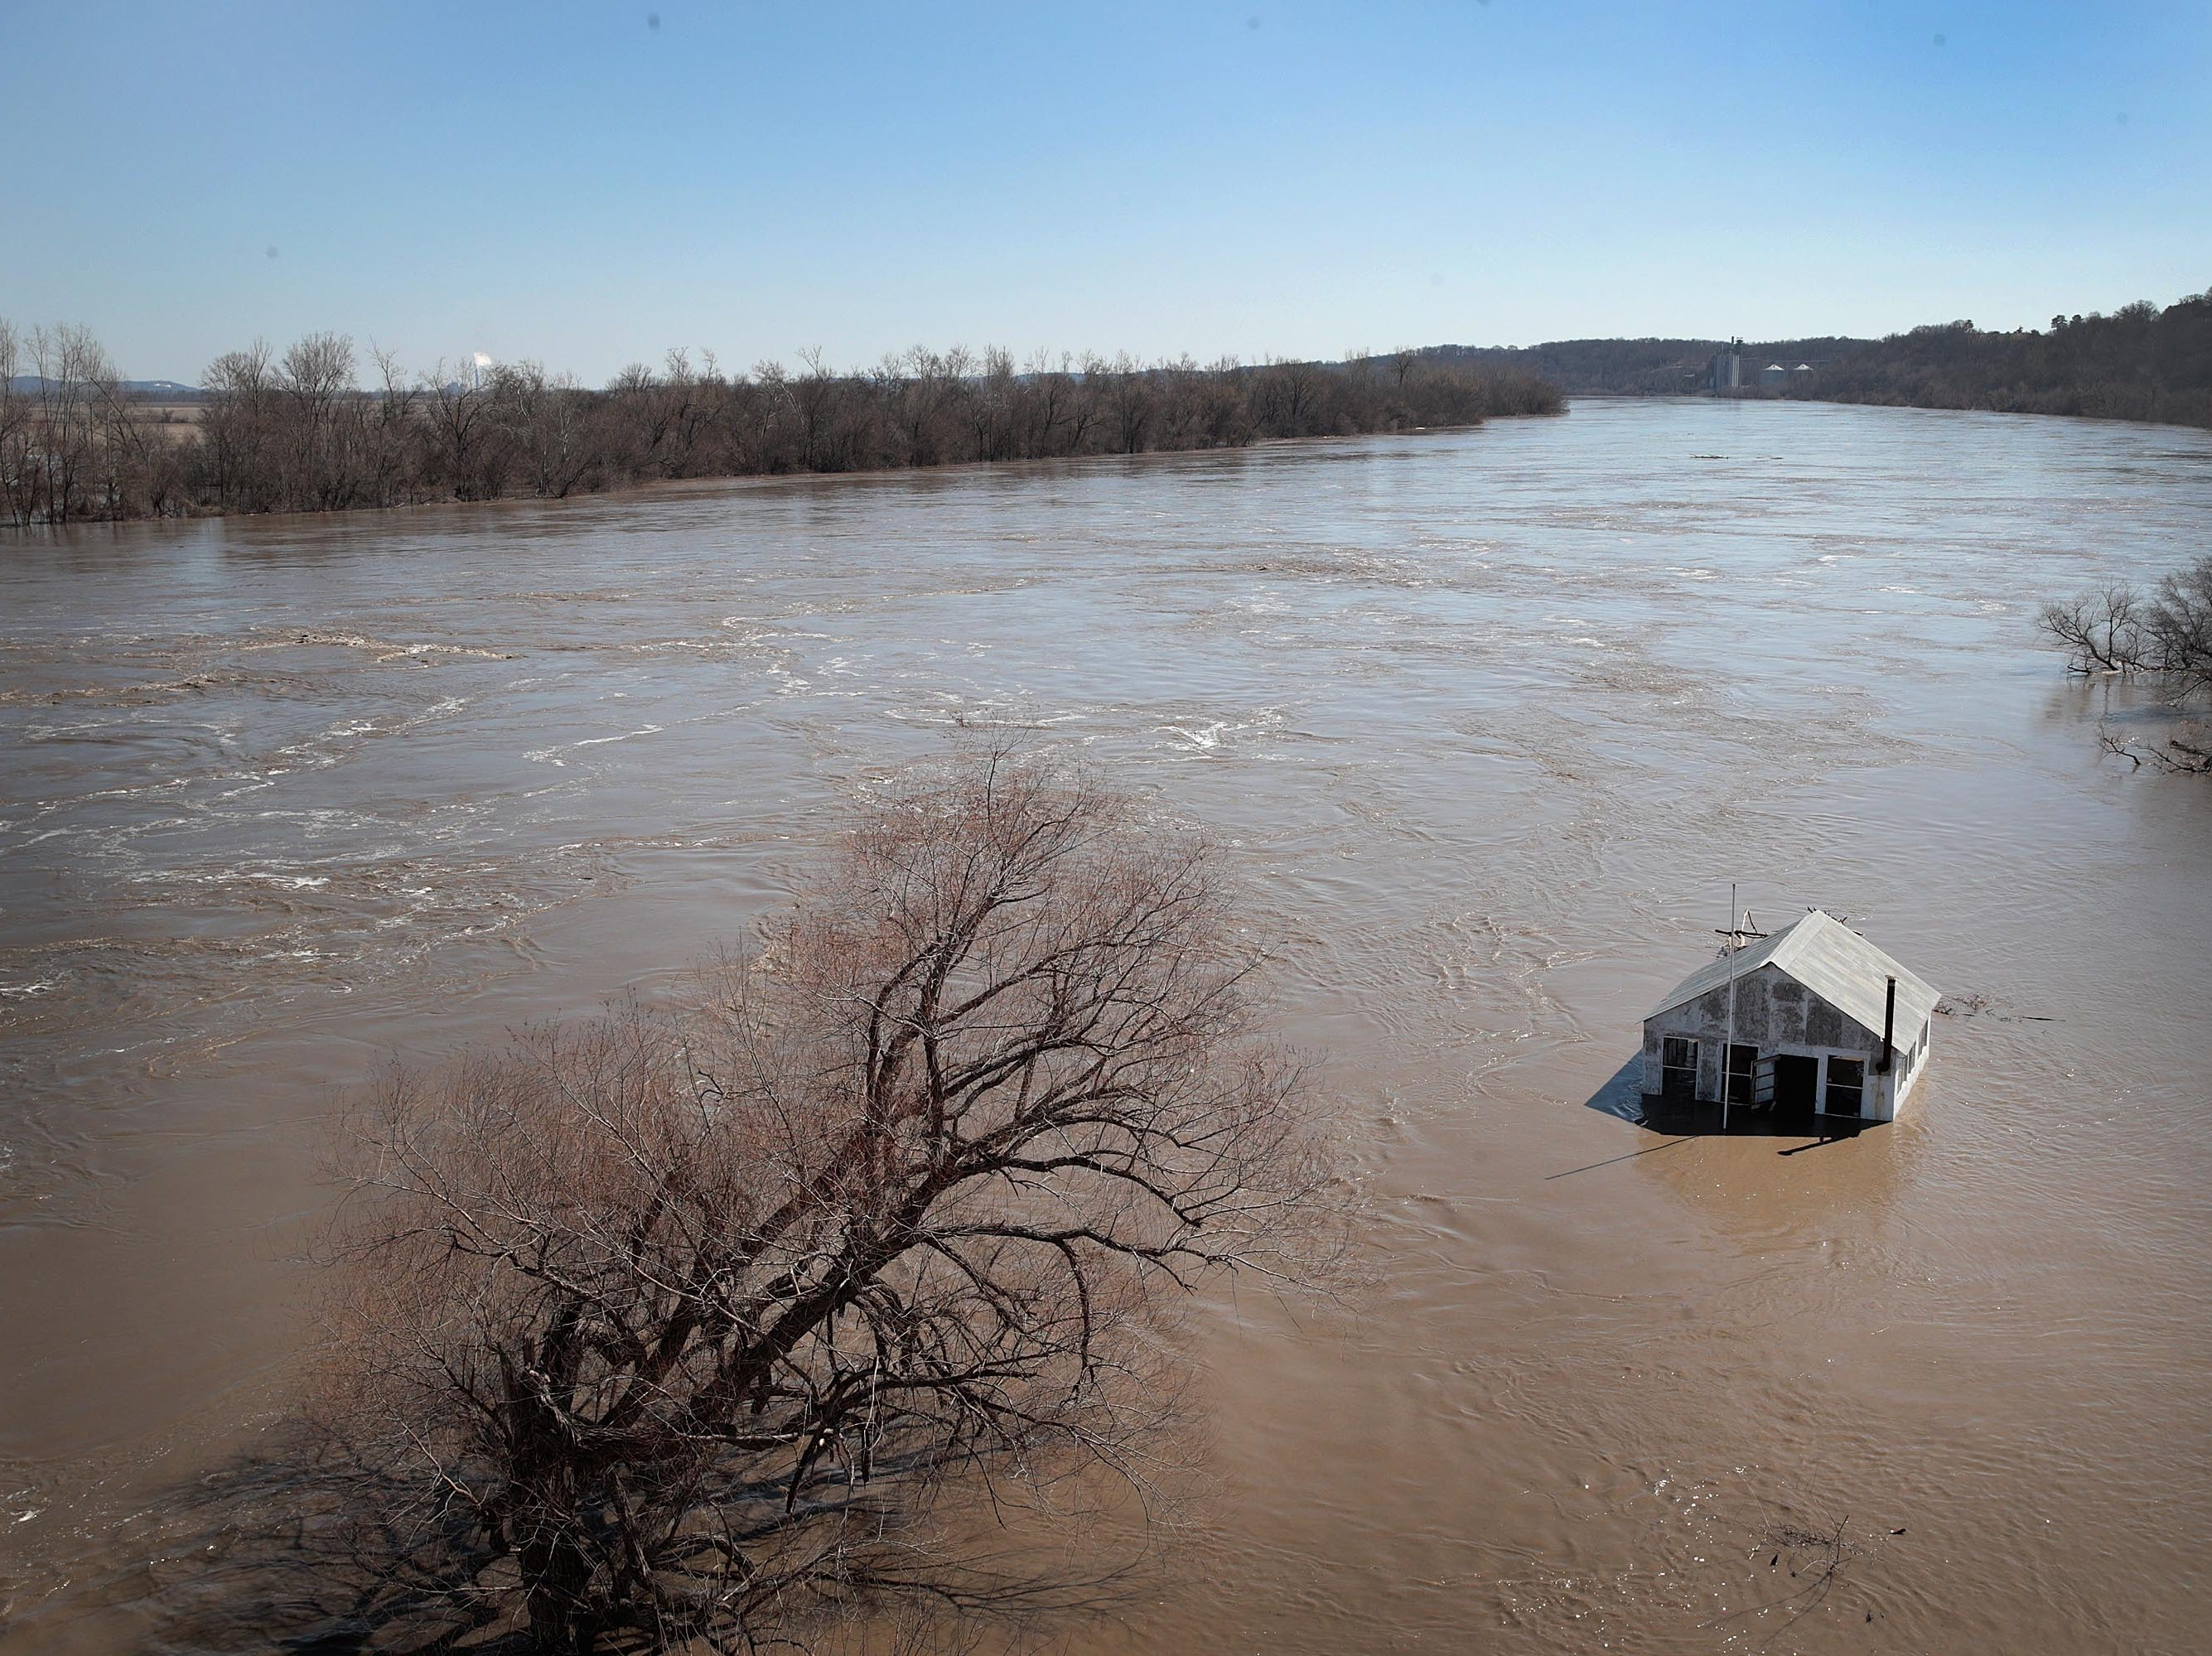 """A structure is surrounded by floodwater on March 21, 2019 in Atchison, Kansas. Several Midwest states are battling some of the worst flooding they have experienced in decades as rain and snow melt from the recent """"bomb cyclone"""" has inundated rivers and streams. At least three deaths have been linked to the flooding."""